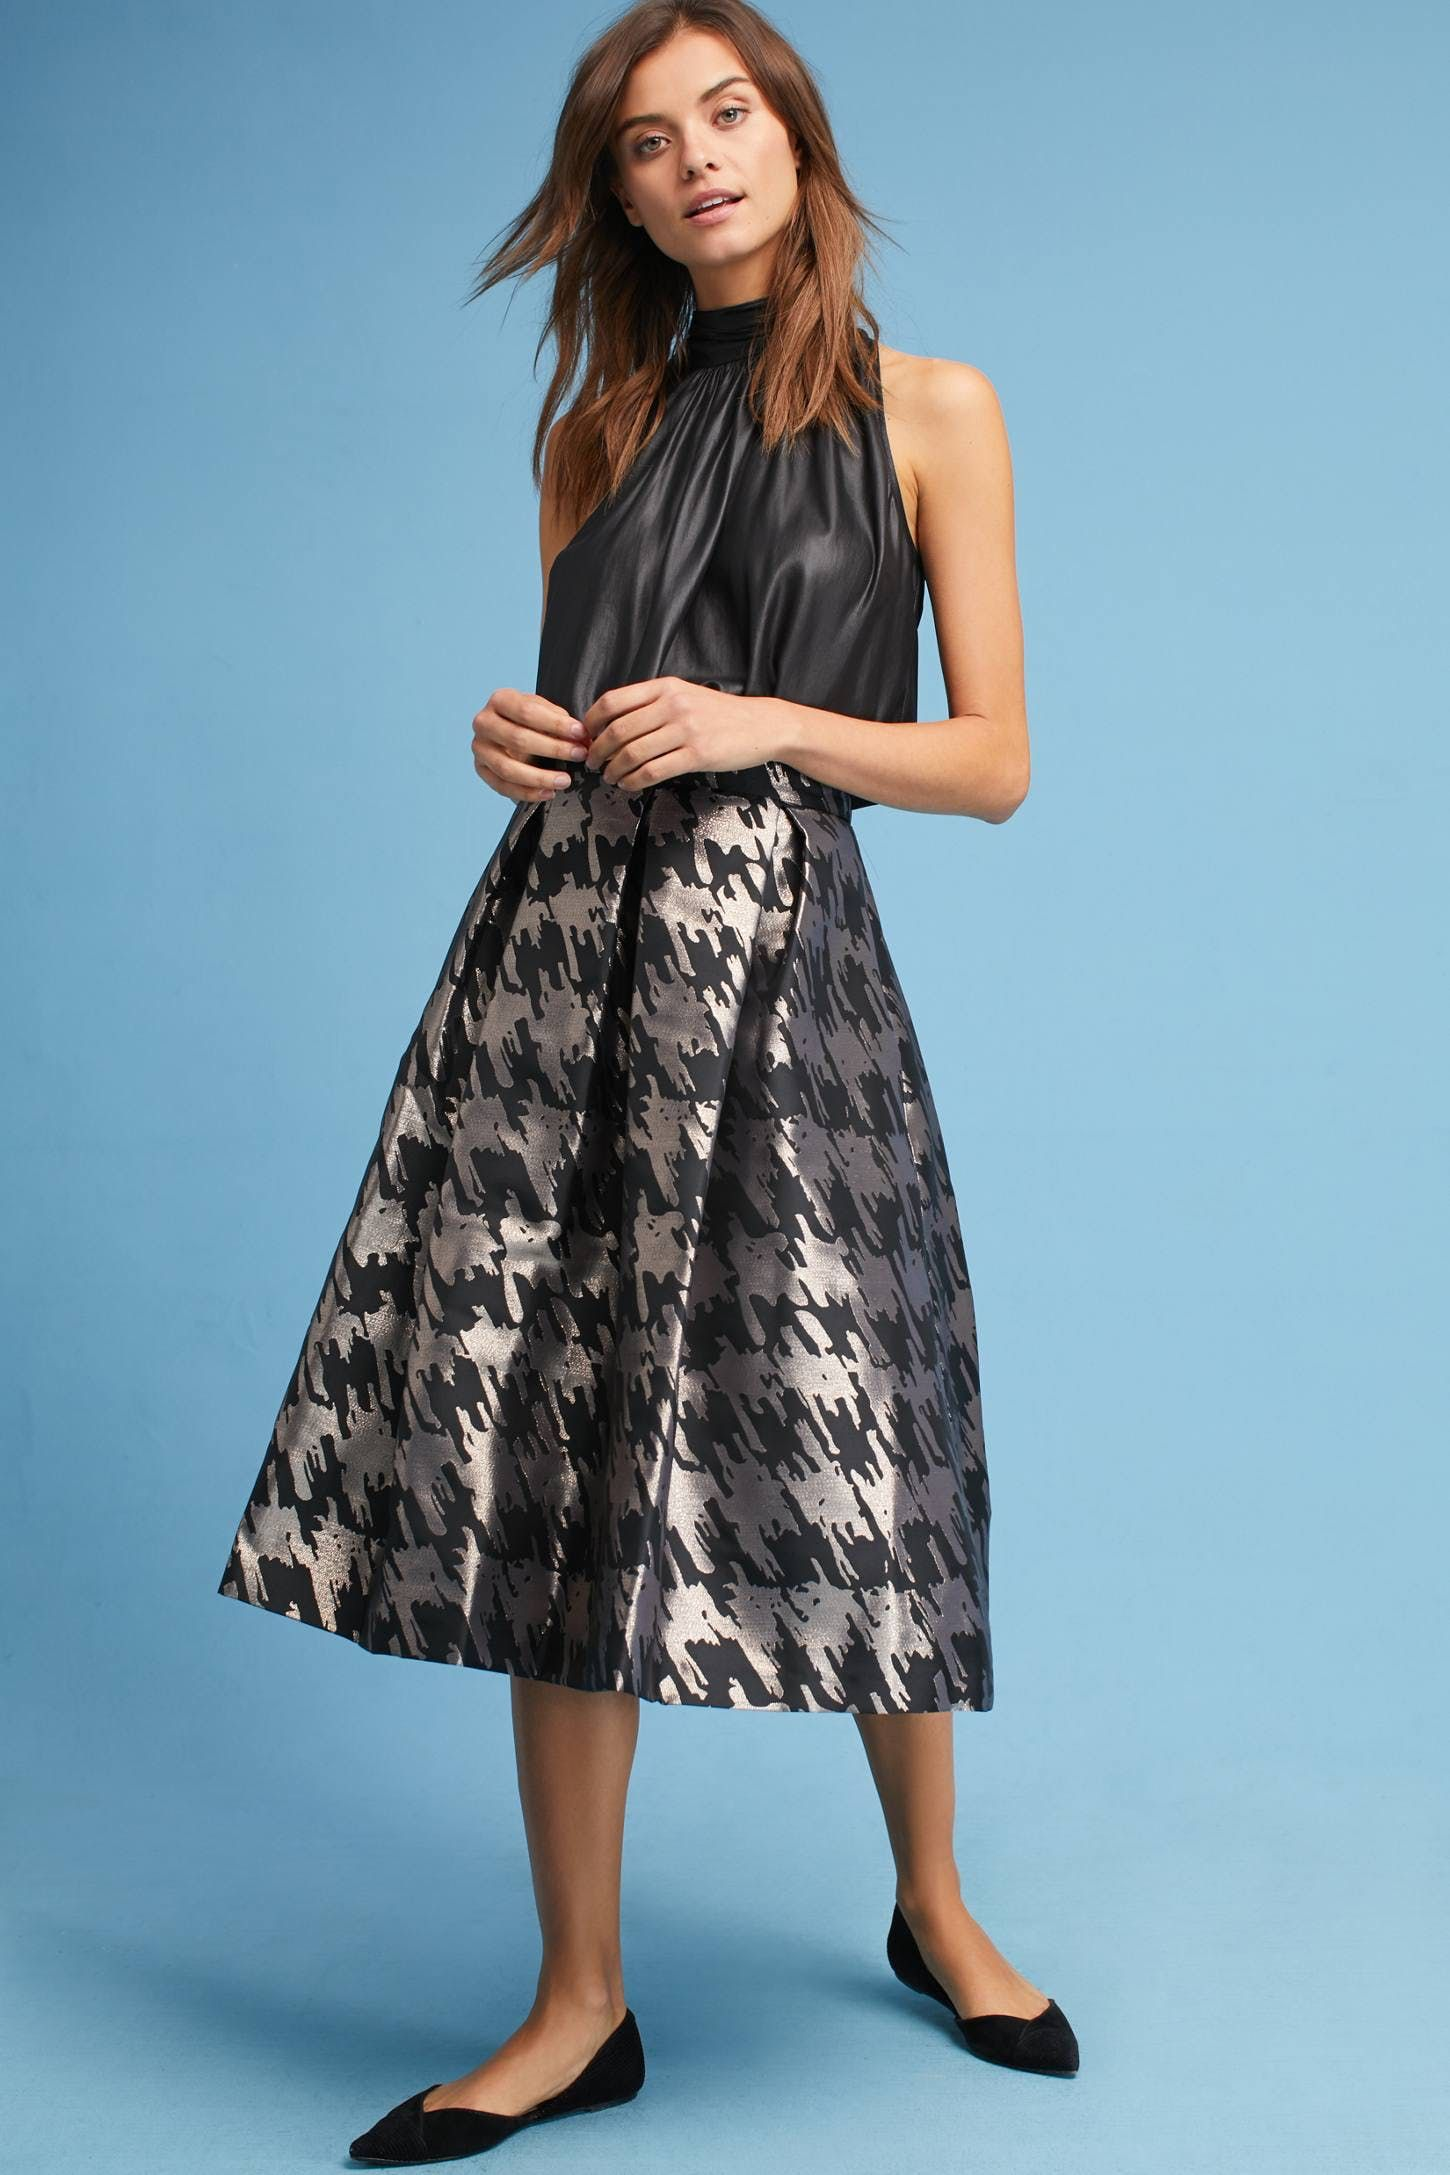 Jacquard houndstooth skirt houndstooth skirt houndstooth and